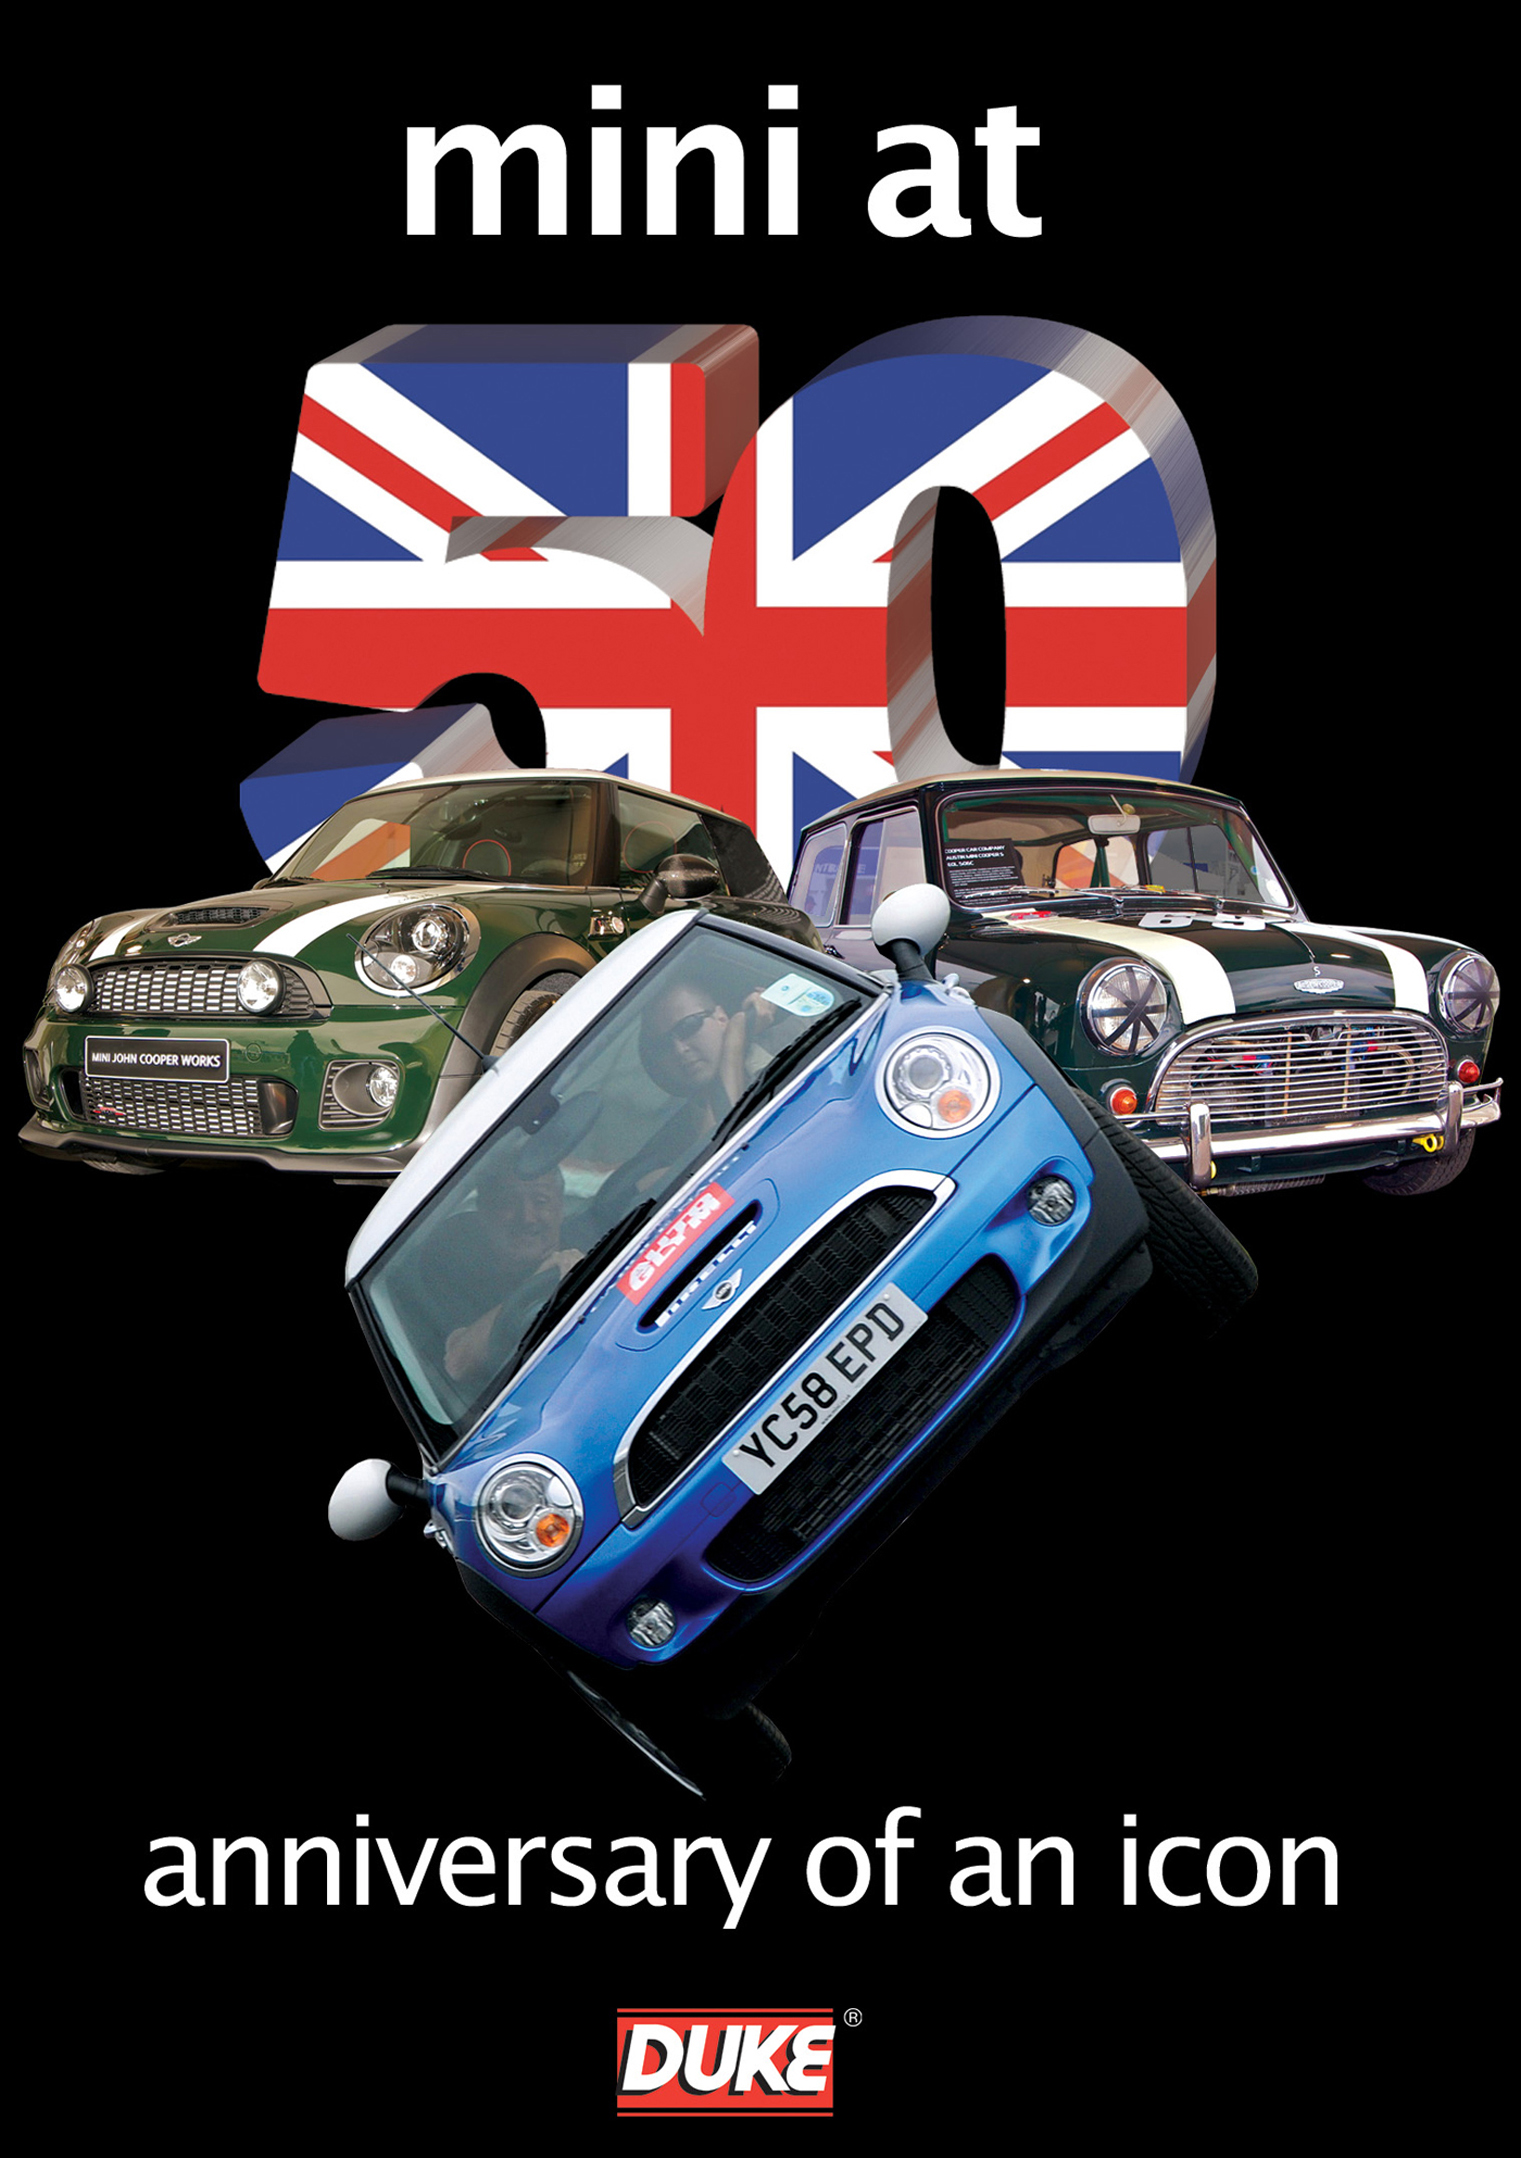 Mini at 50: Anniversary of an Icon